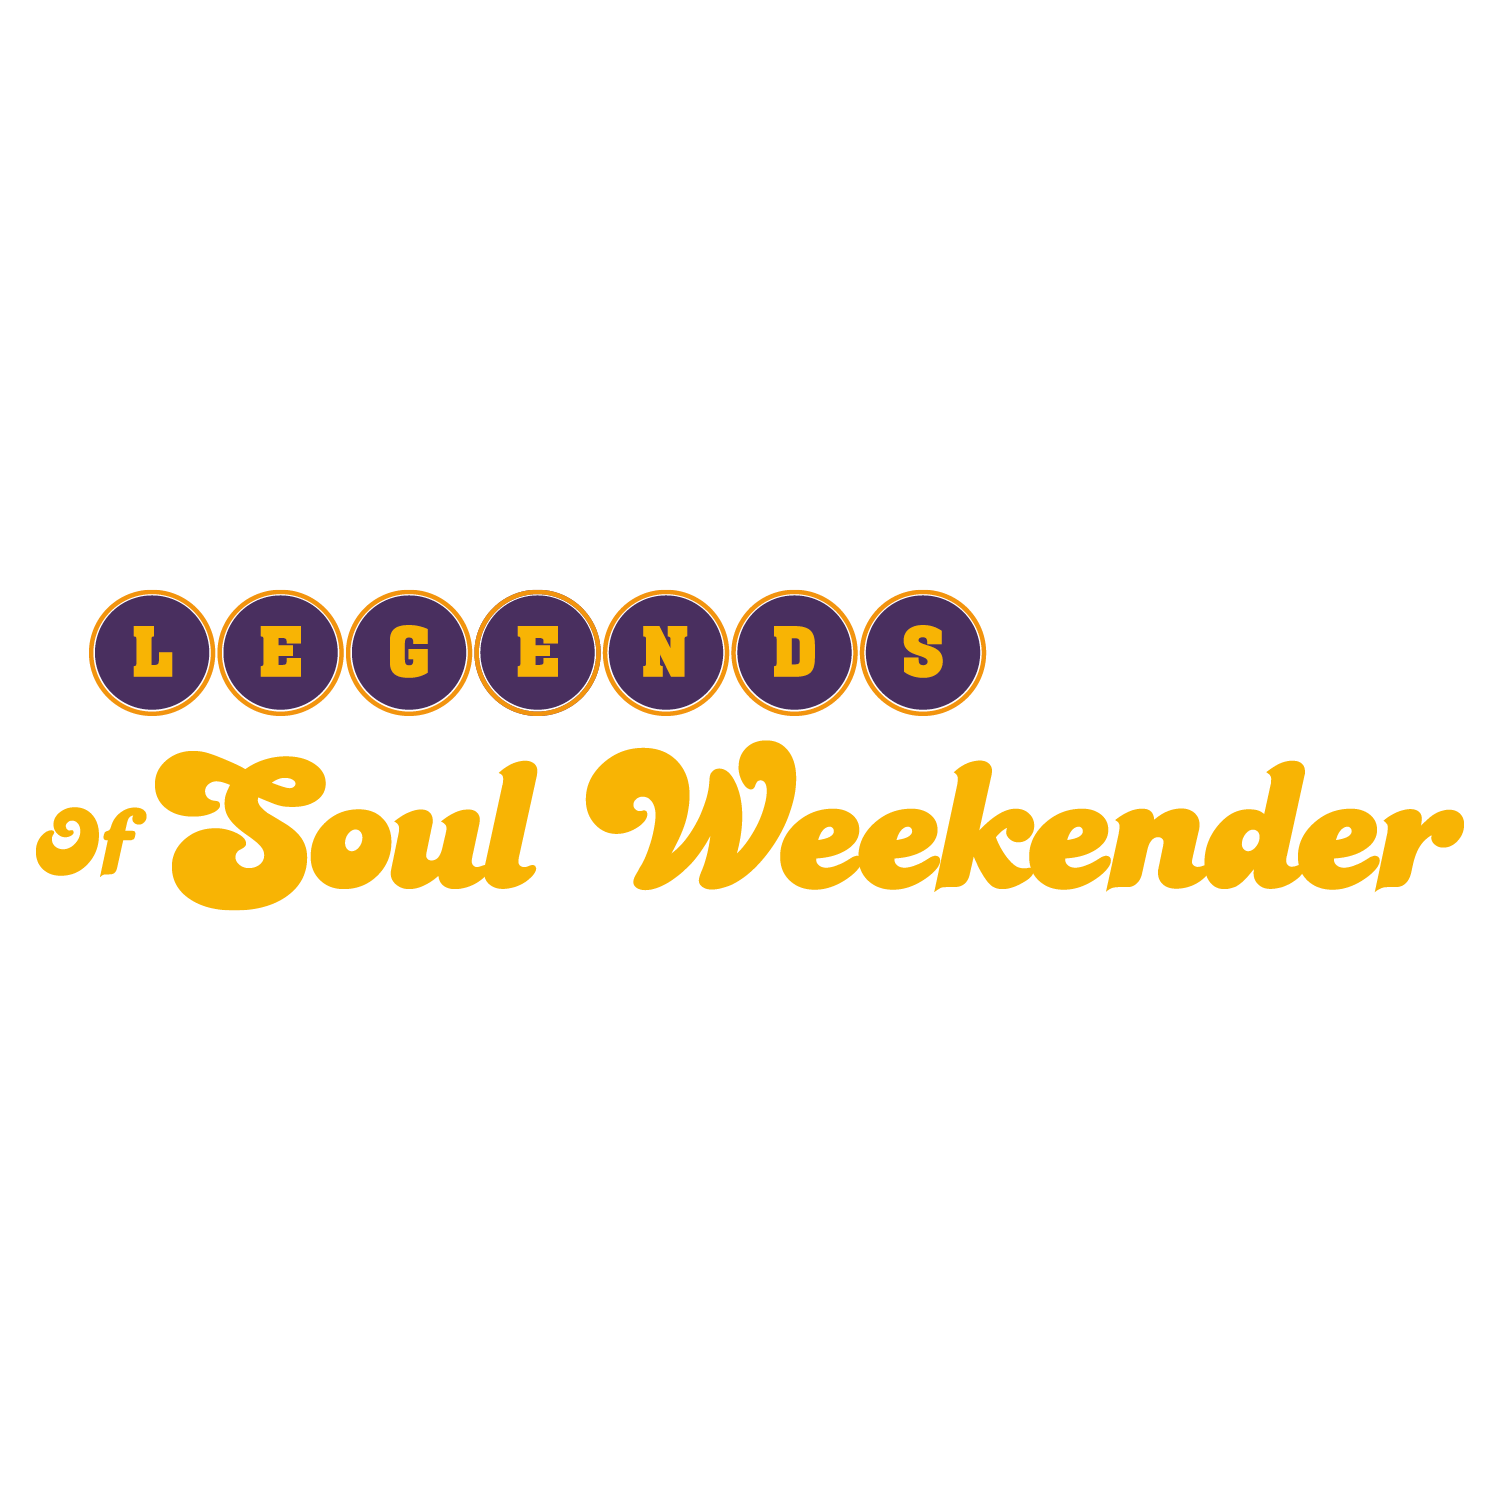 LMW BREAK LOGOS_1500px WIDE_SOUL WO.png